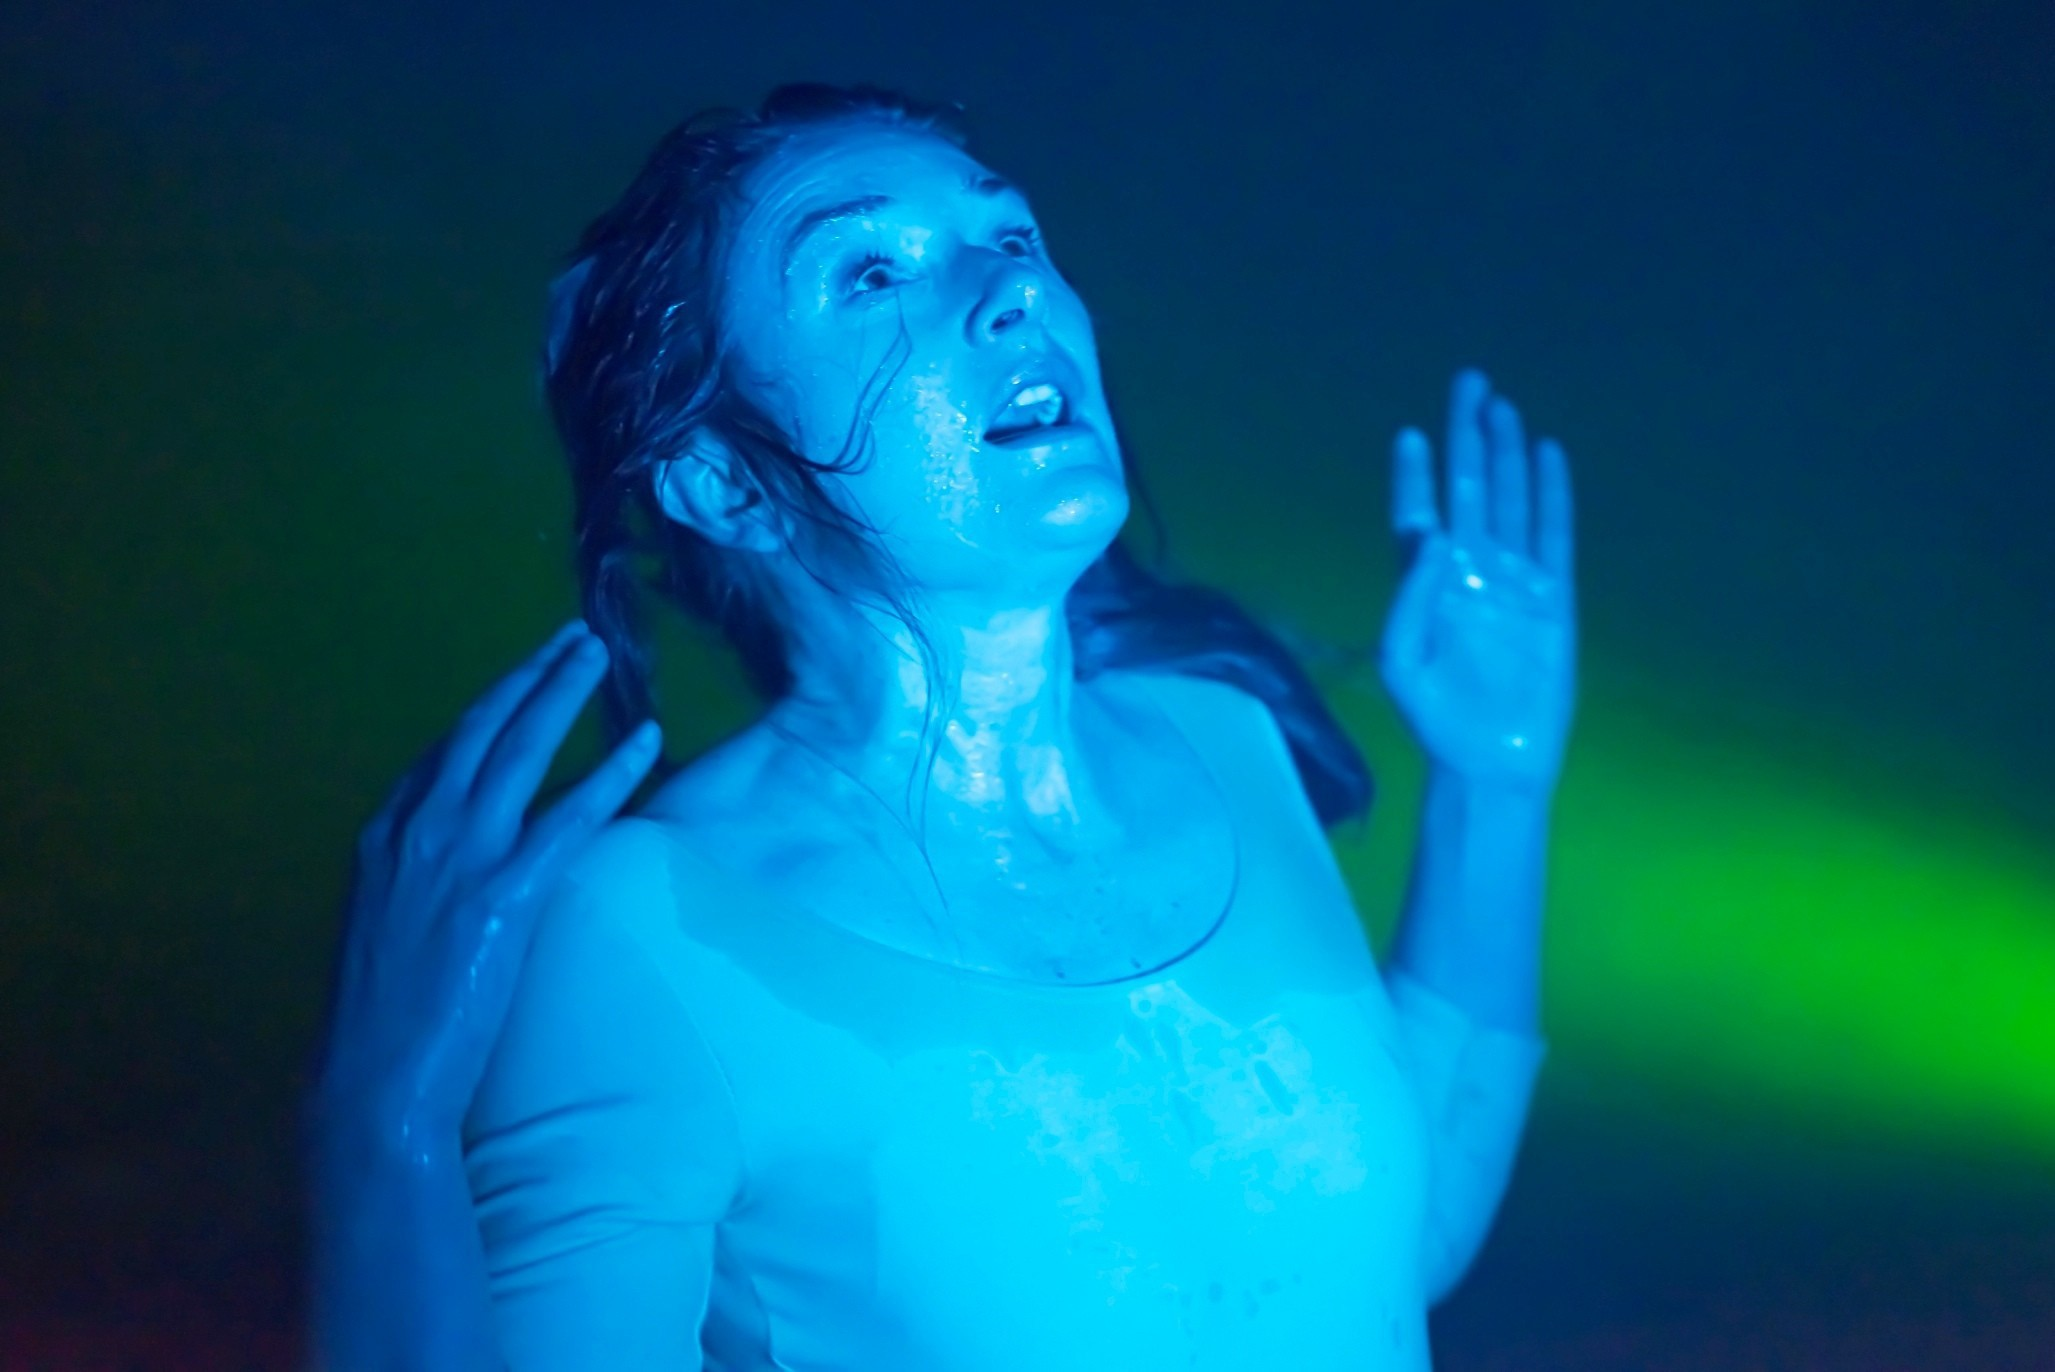 Image of a woman who appears sweaty of wet with her hand in the air, looking upwards, against a green and blue background